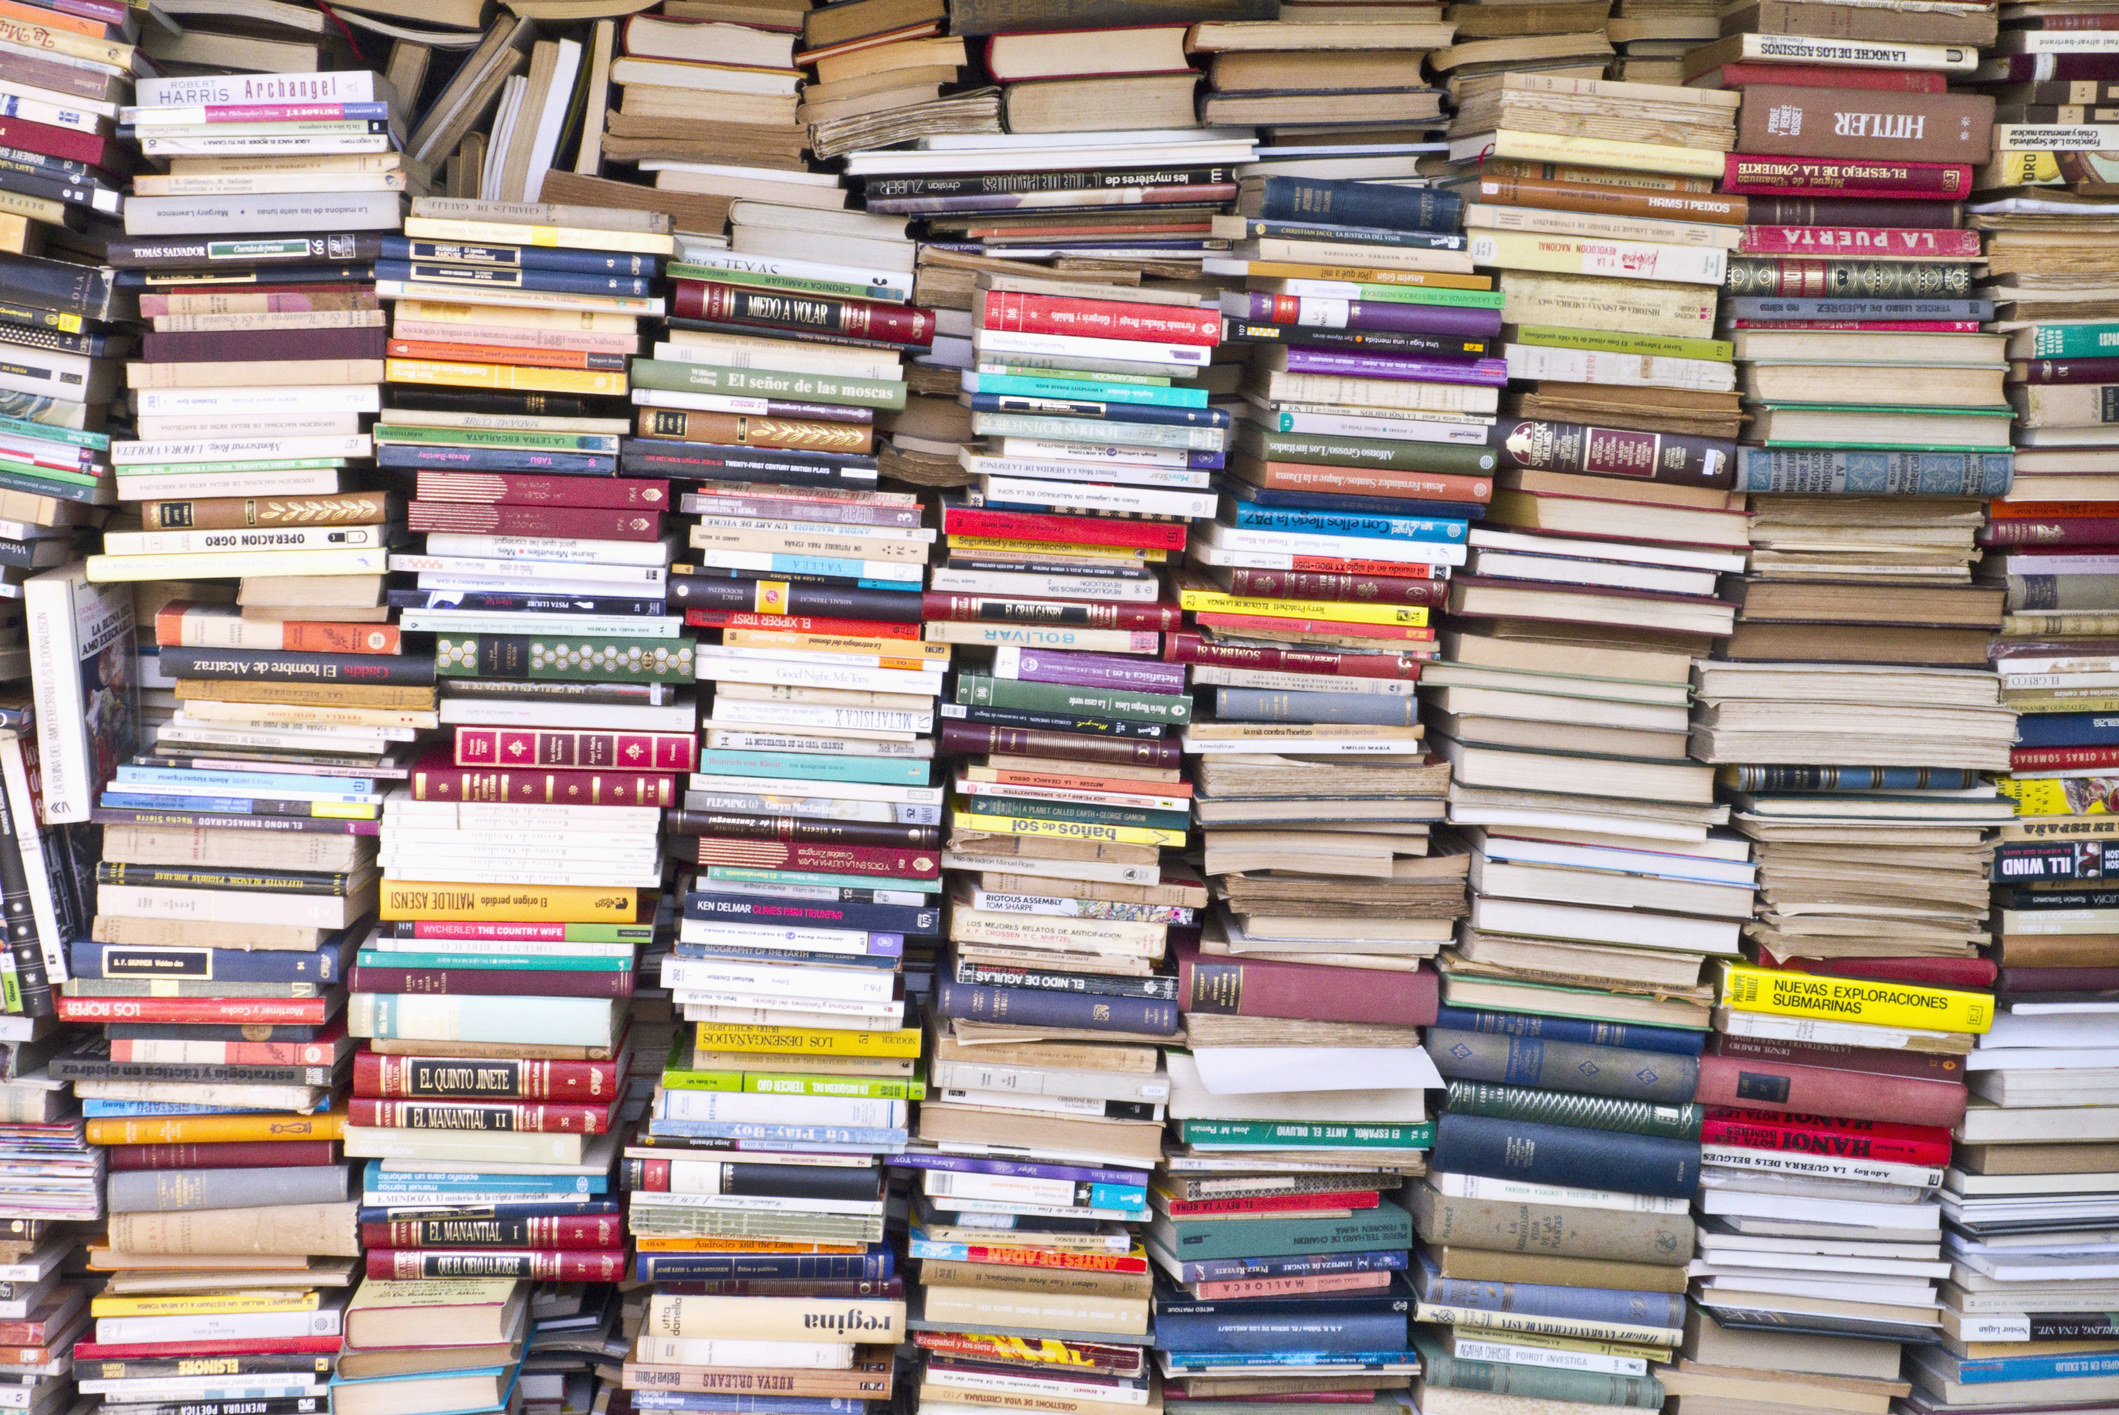 Tons of books in stacks, some spine out and some page-side out